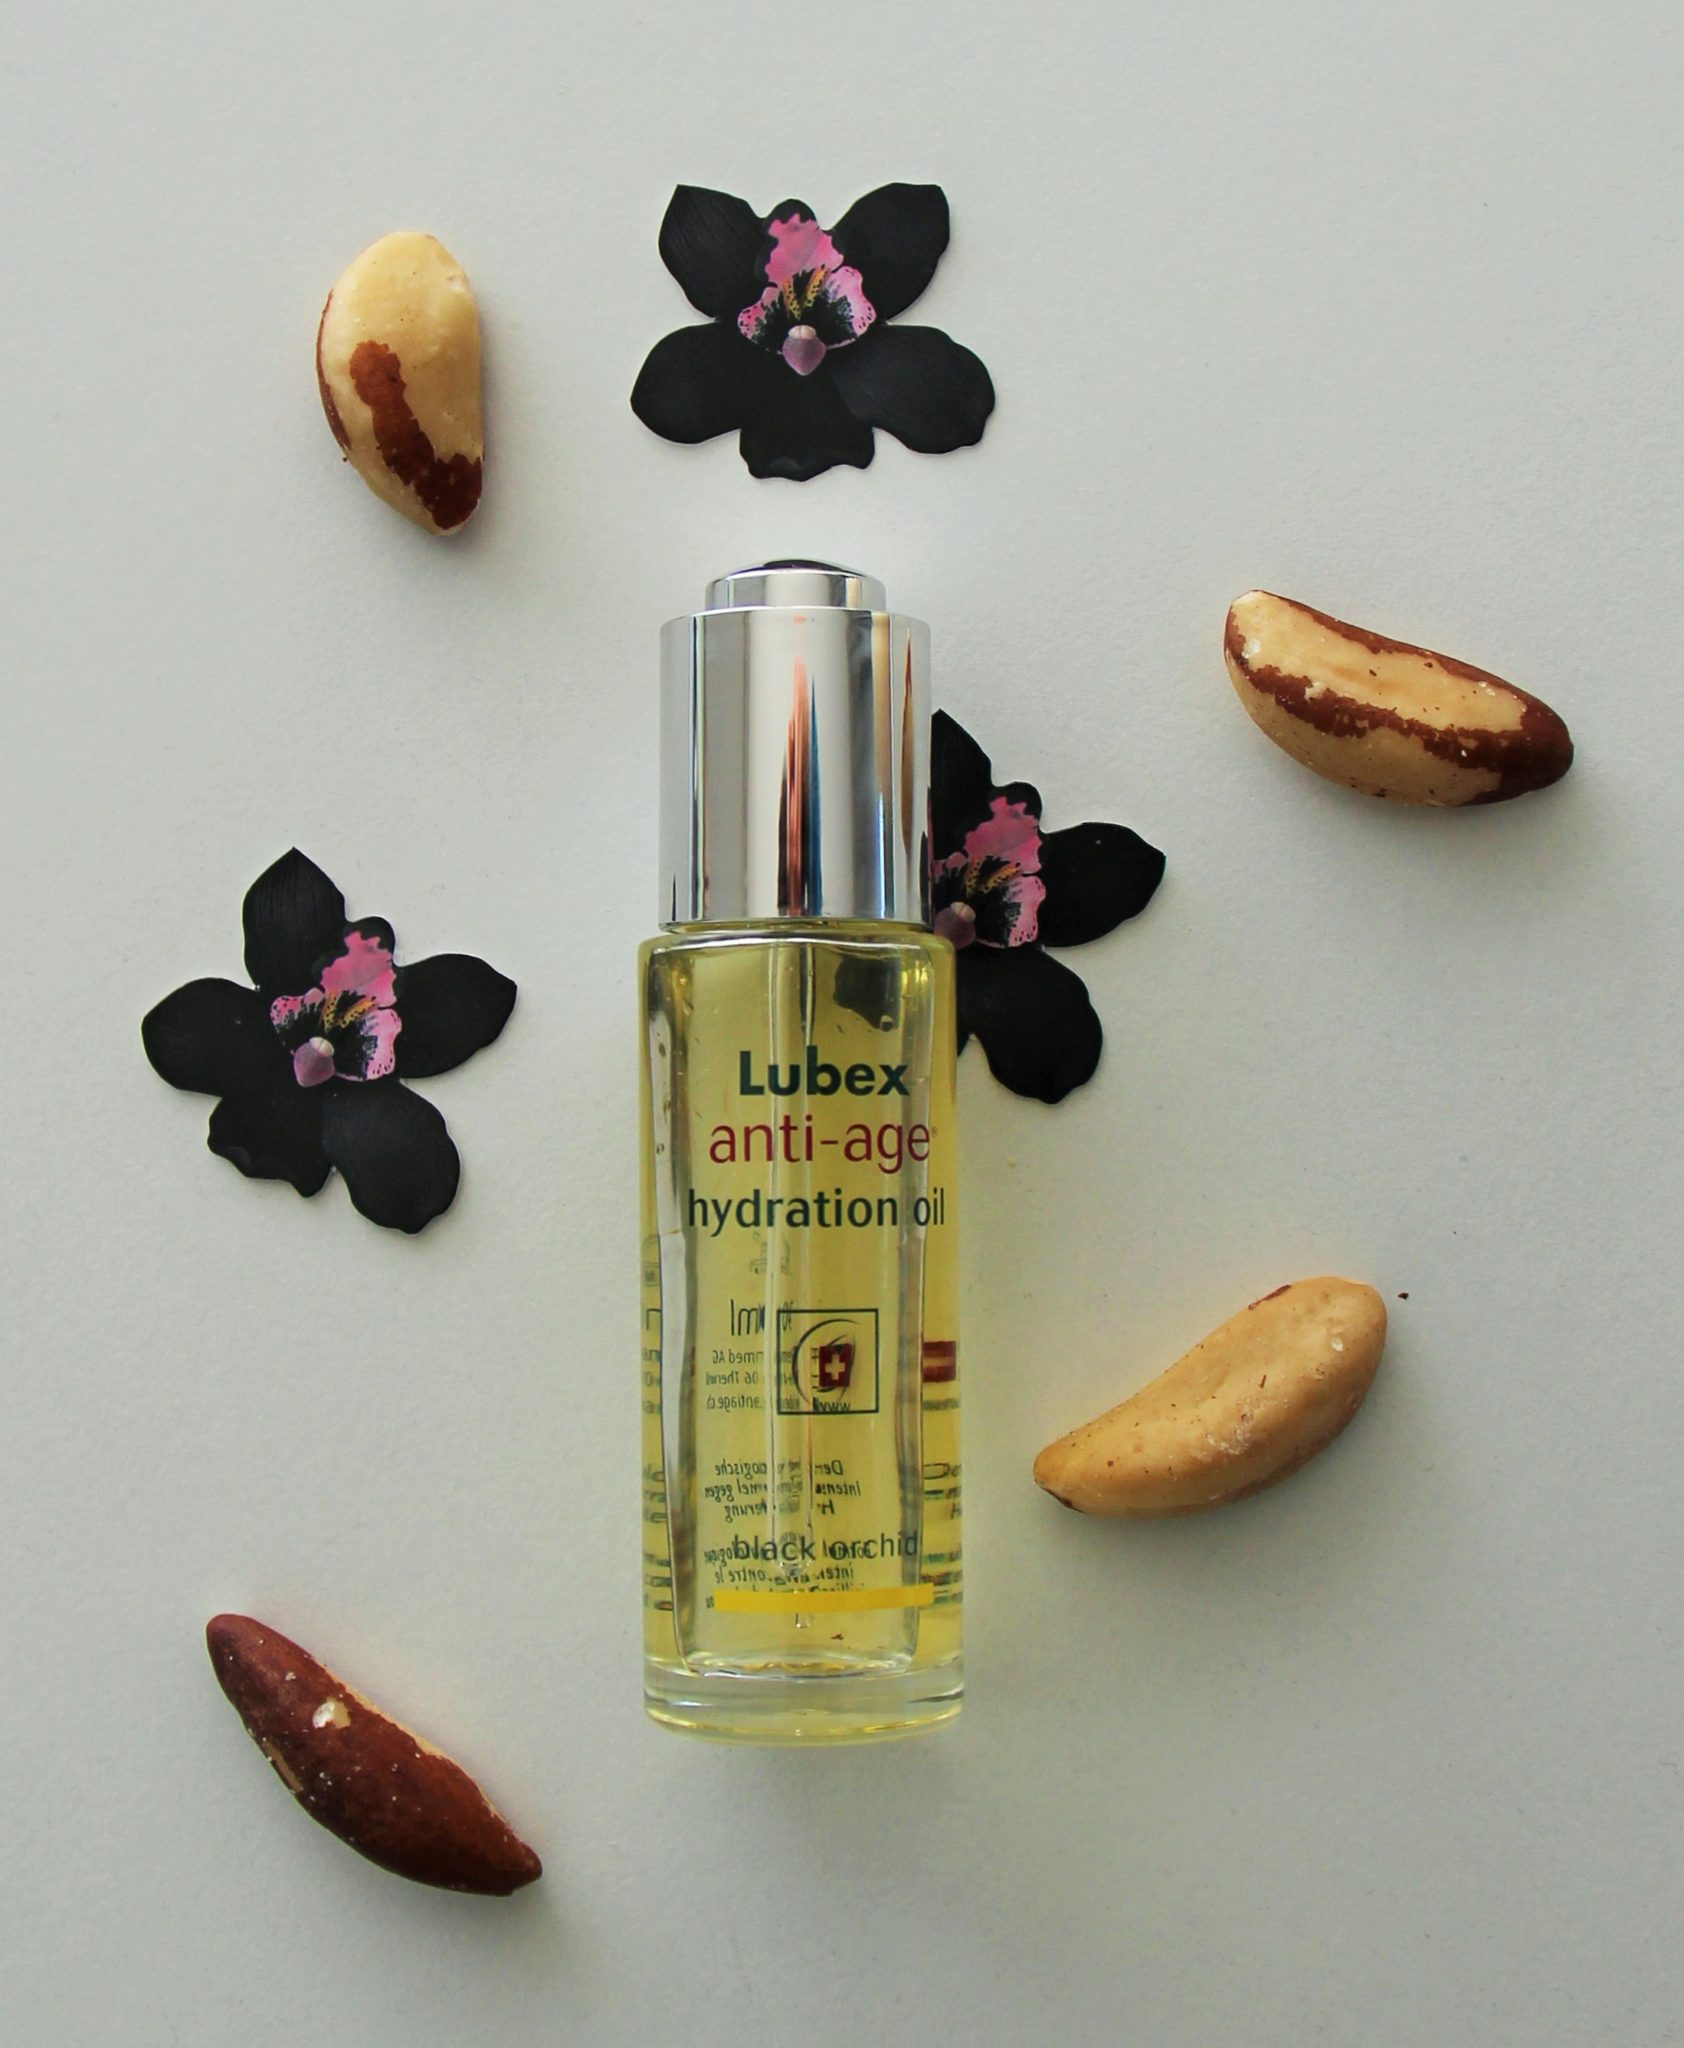 Lubex anti-age hydration oil orchid brazil nut DisMoiCéline